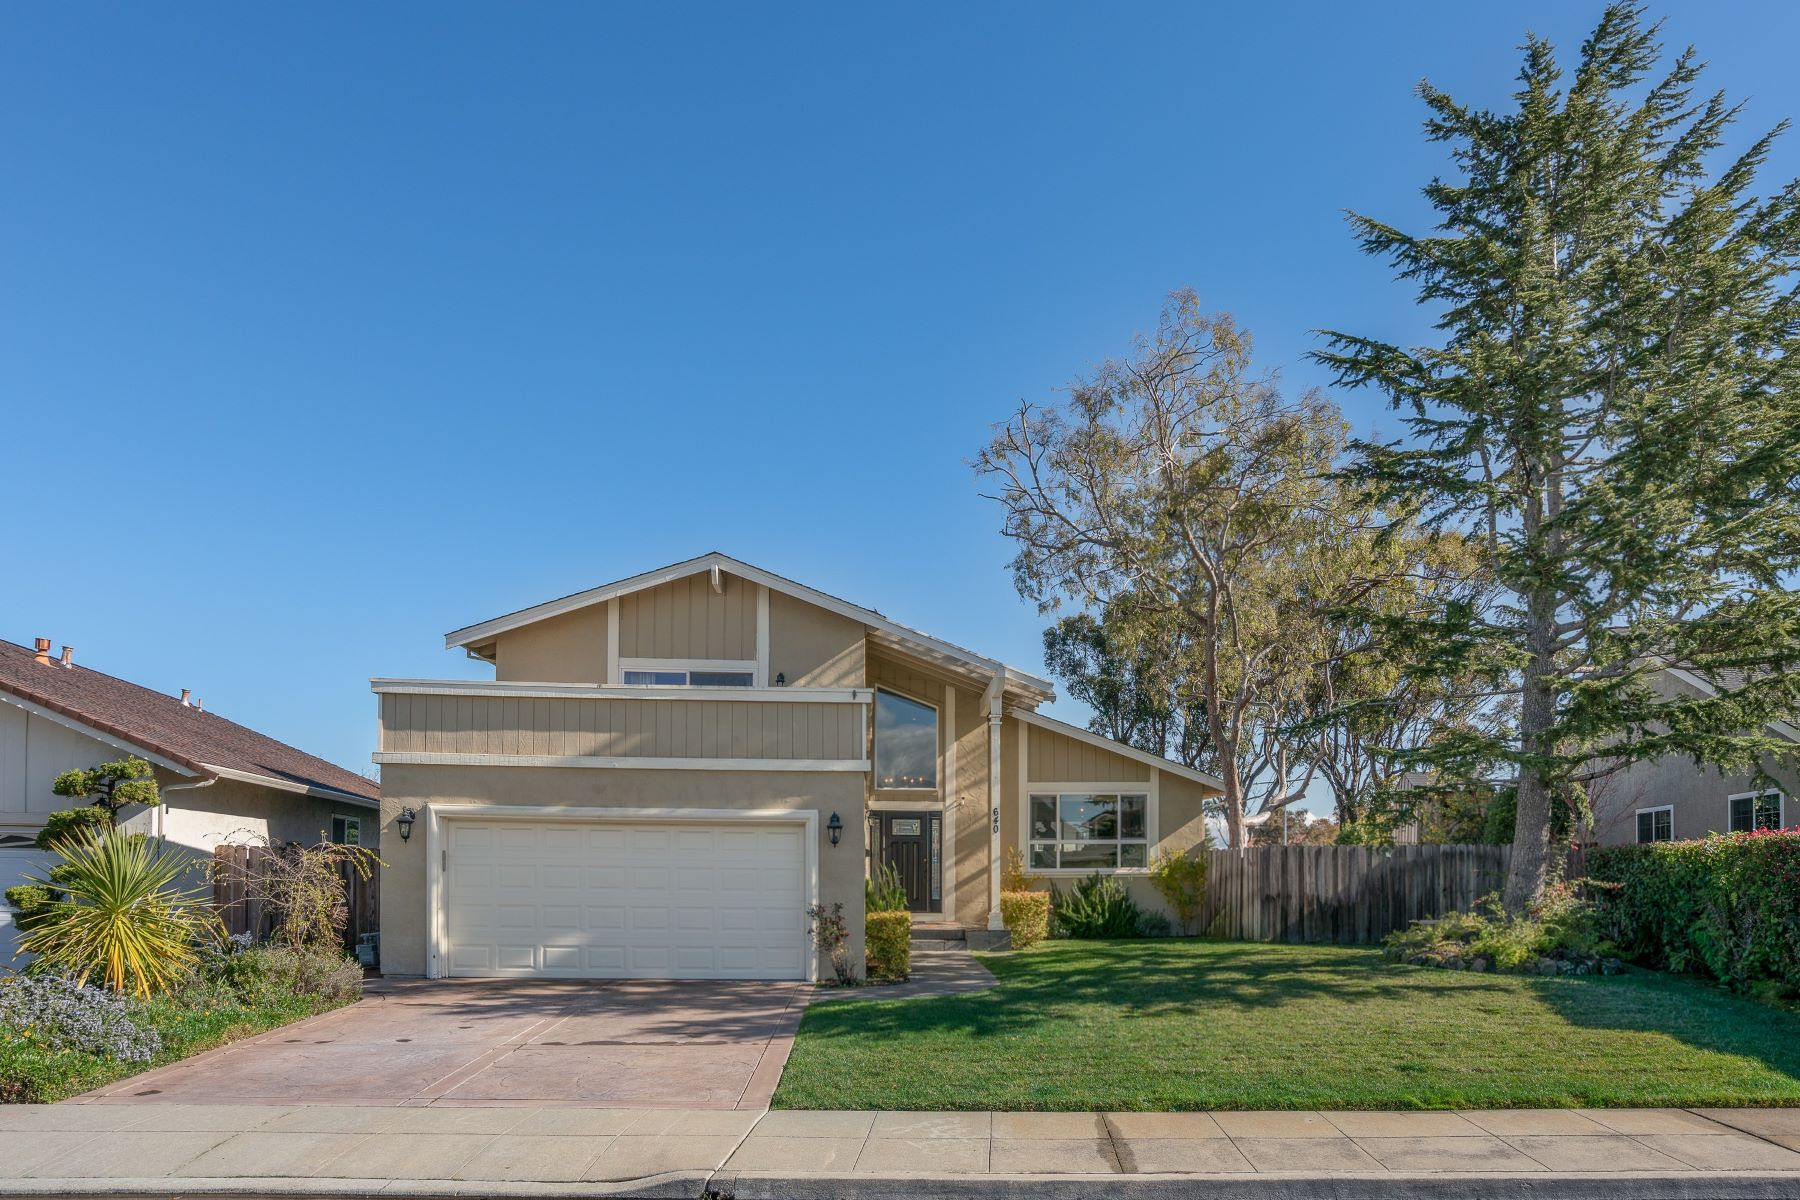 Single Family Home for Active at Remodeled Foster City Home 640 Sandy Hook Court Foster City, California 94404 United States